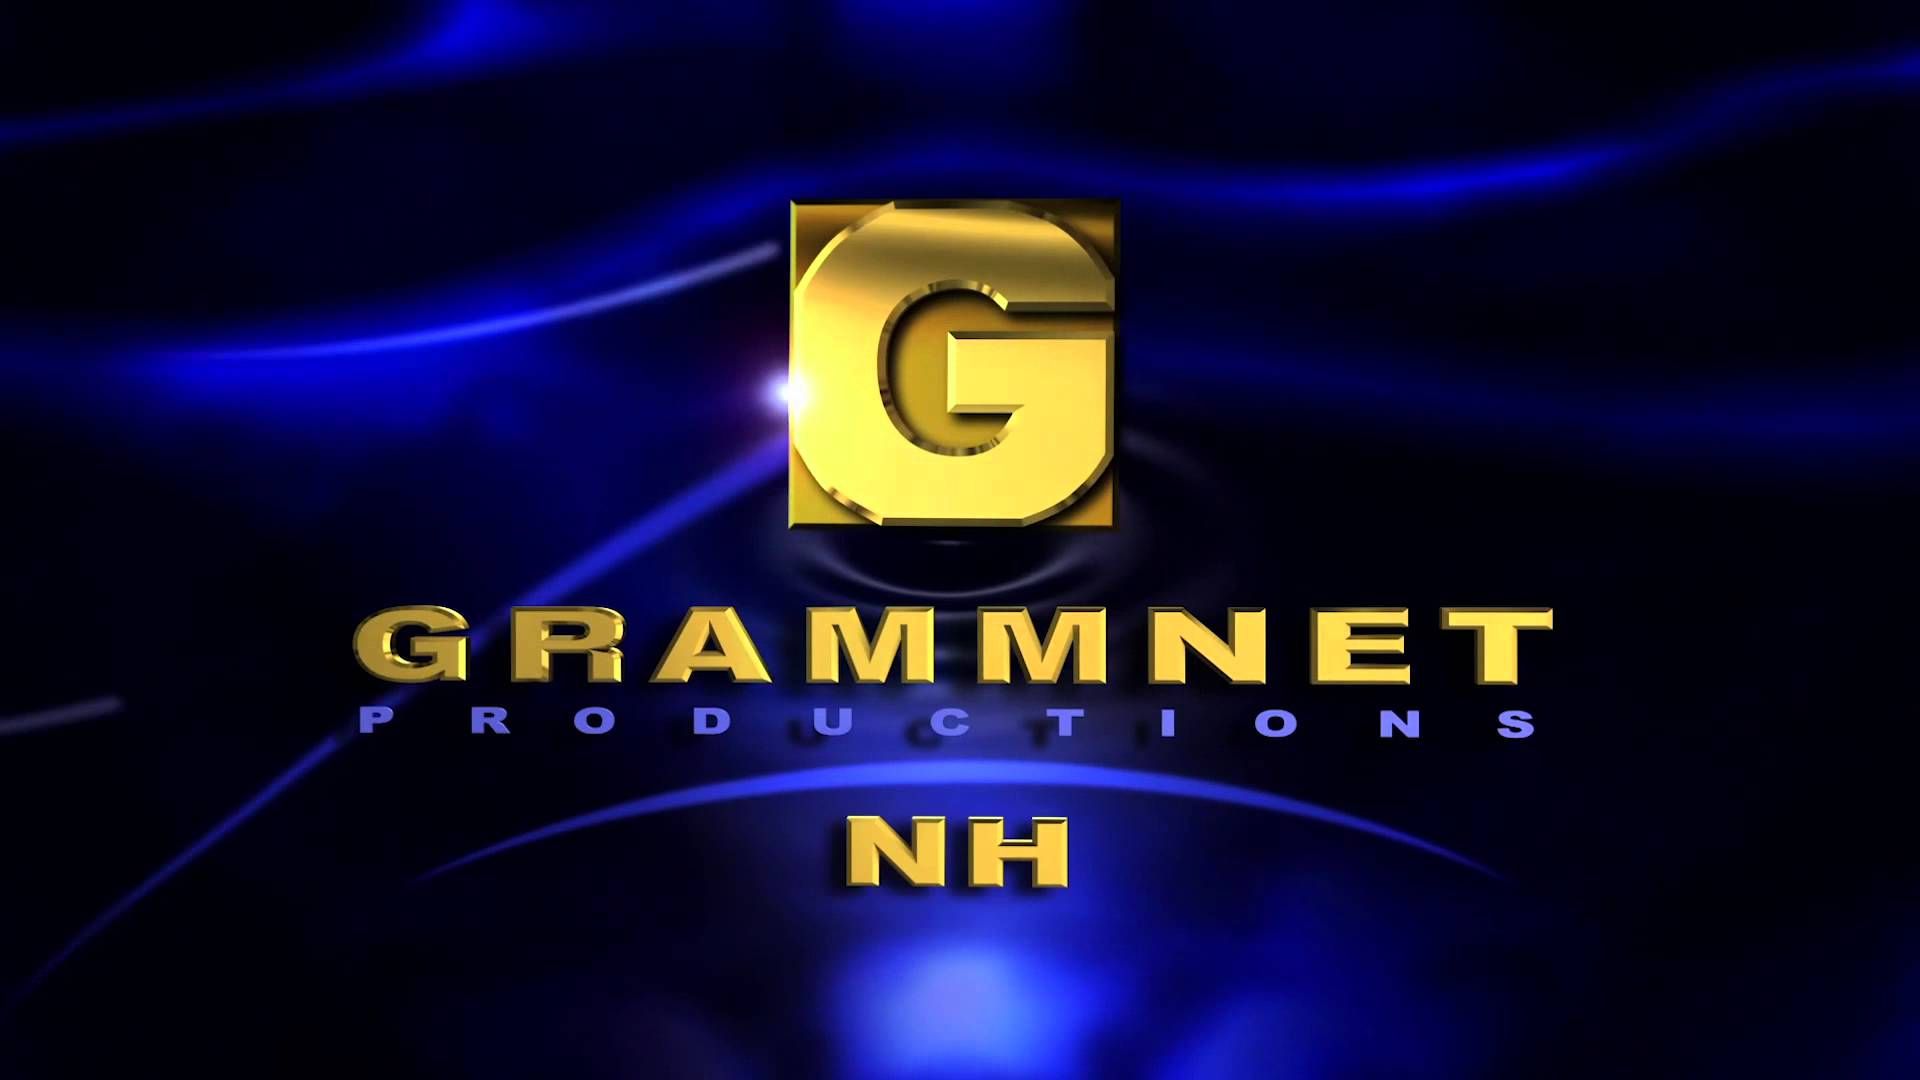 Image grammnet productions nh enhancedg logopedia fandom grammnet productions nh enhancedg malvernweather Images